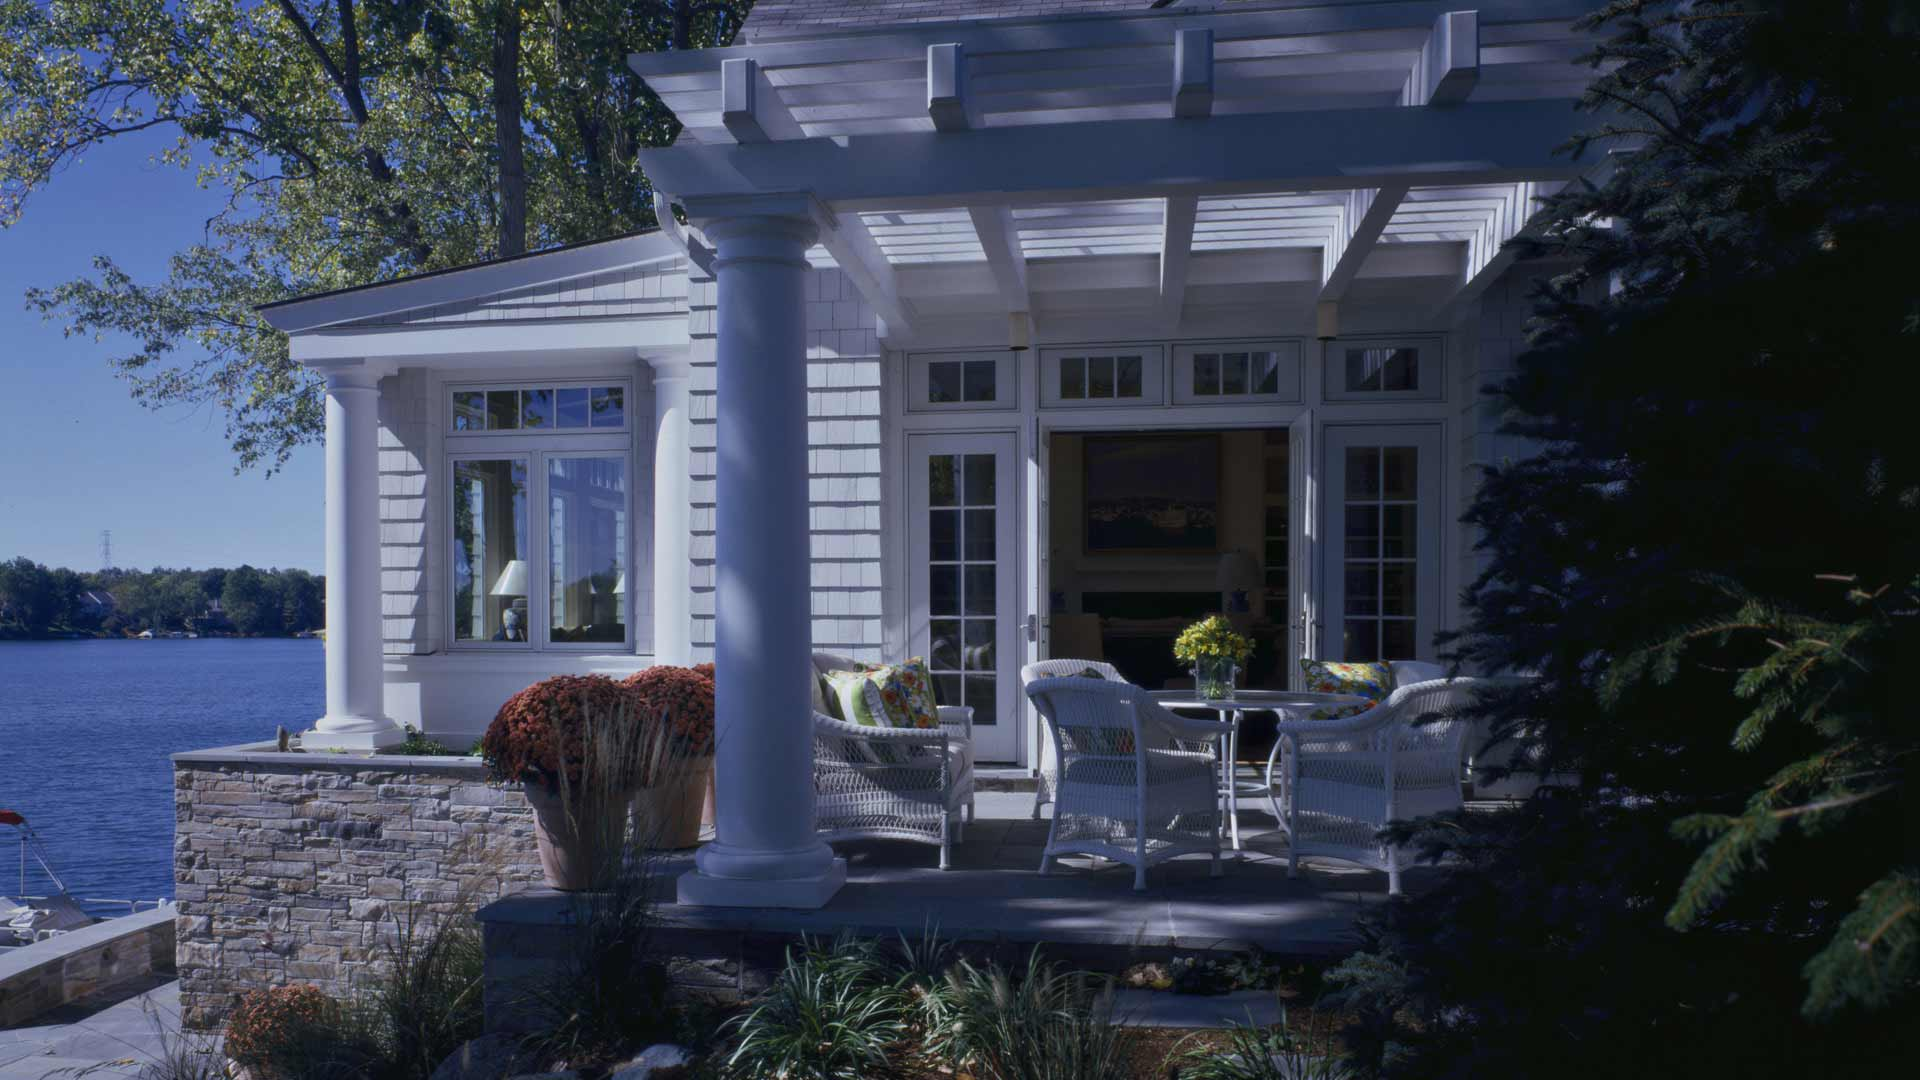 Nantucket Bay Shingle Style - East Covered Patio - HAUS Architecture, Christopher Short, Indianapolis Architect